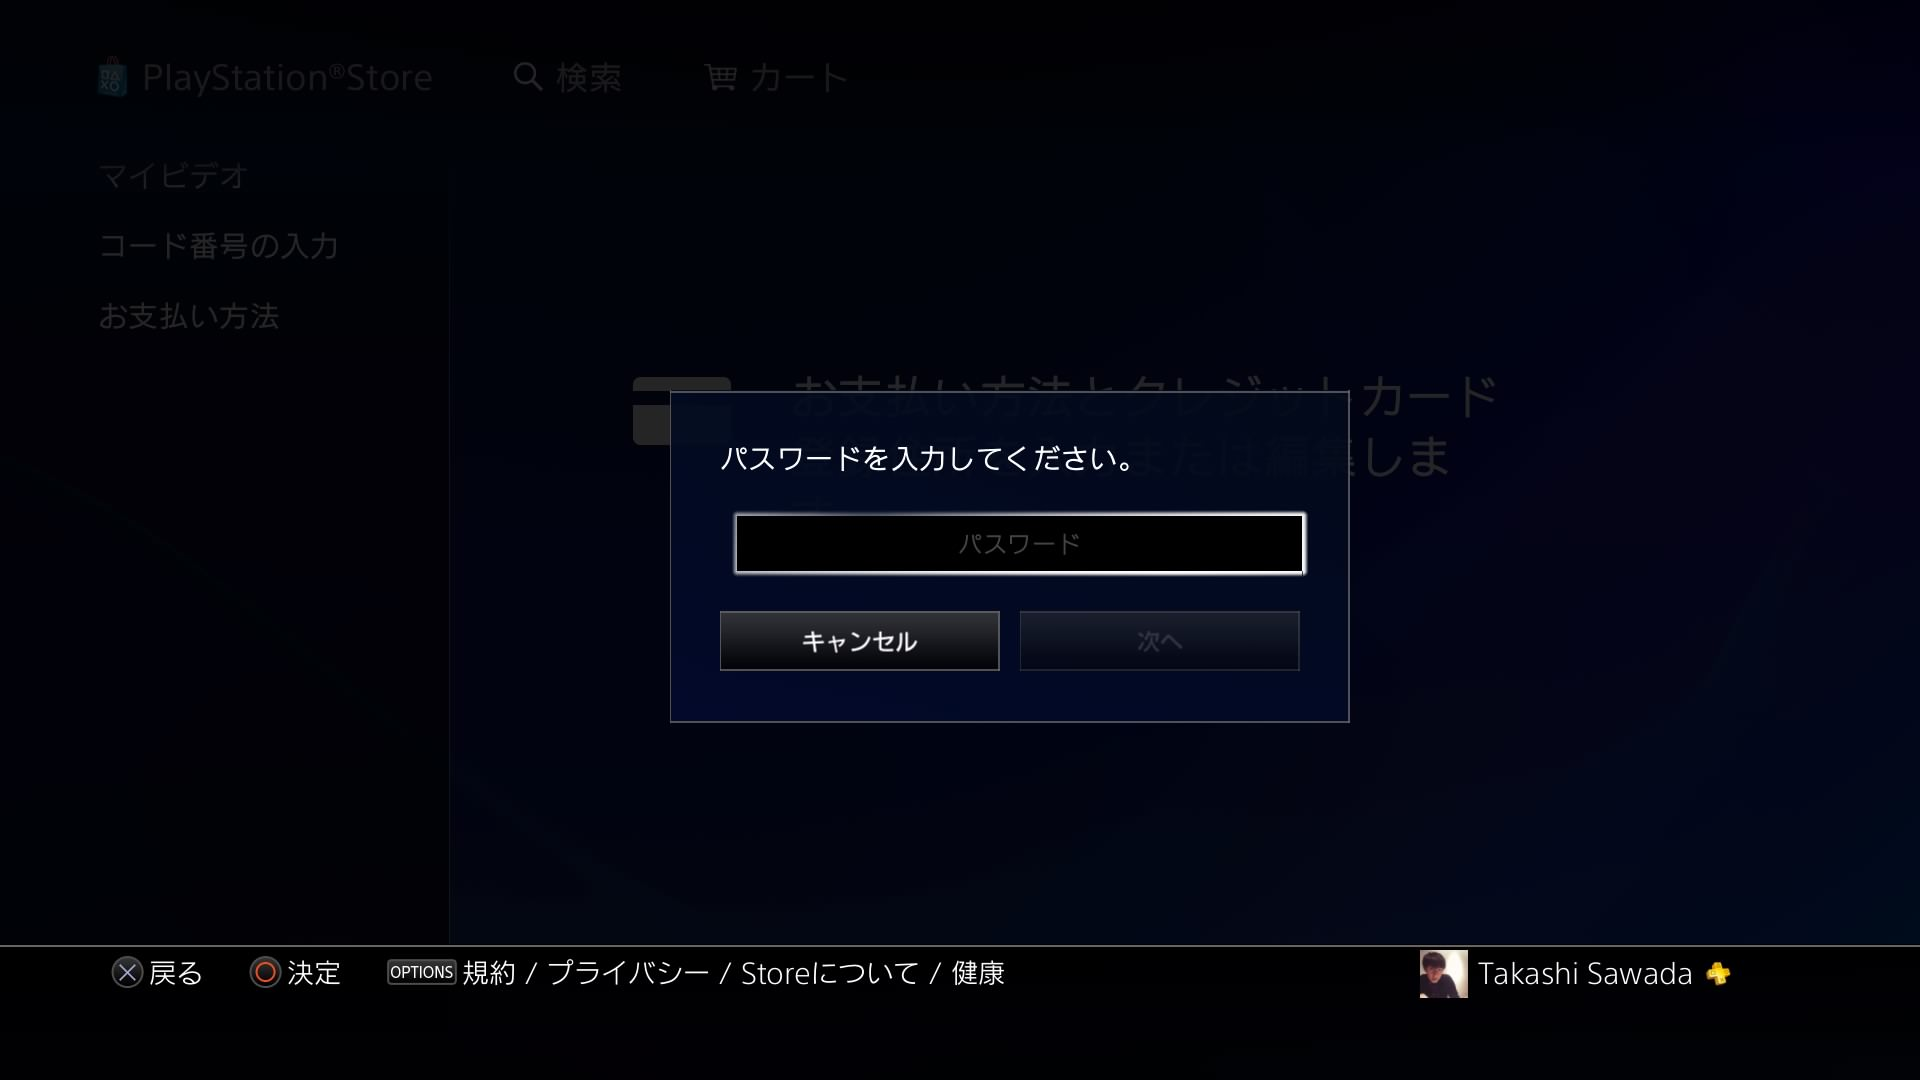 How to set payment to paypal by playstation store from ps4 3